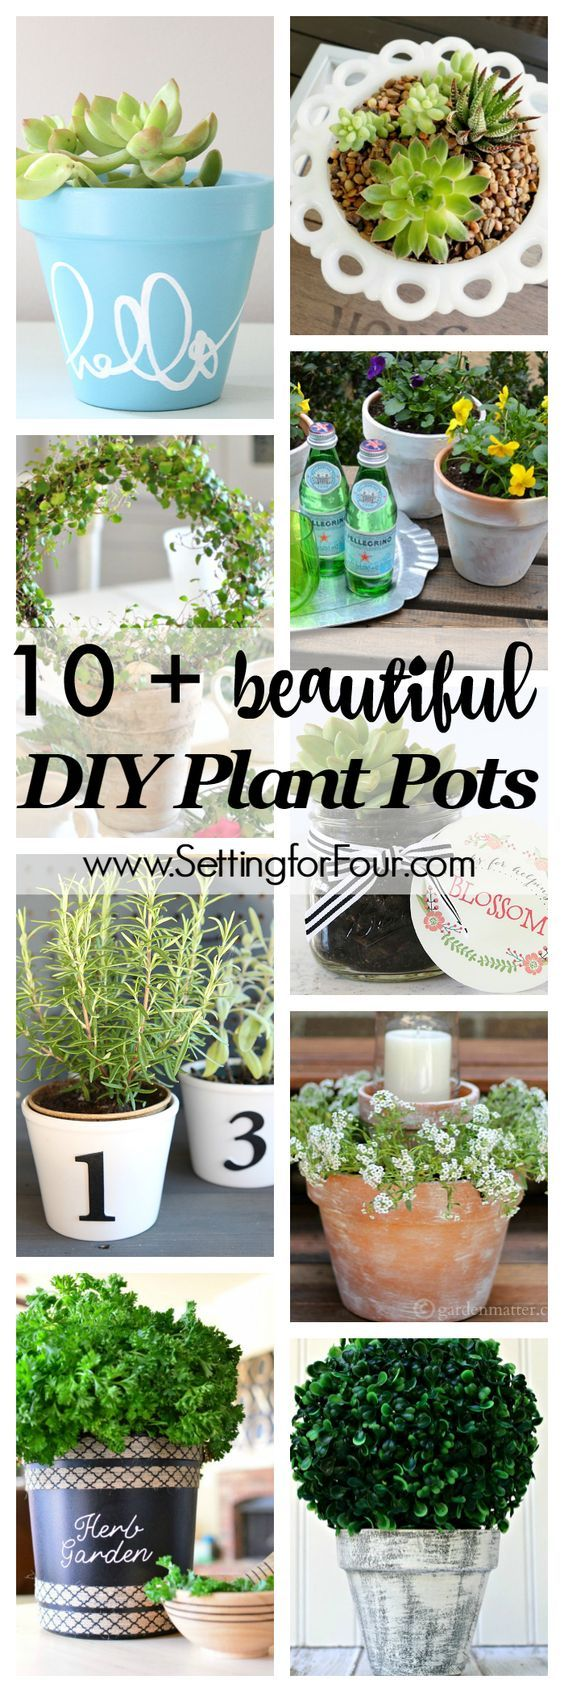 10 plus beautiful DIY Plant Pots - Home and Garden ideas! Save money by making y...